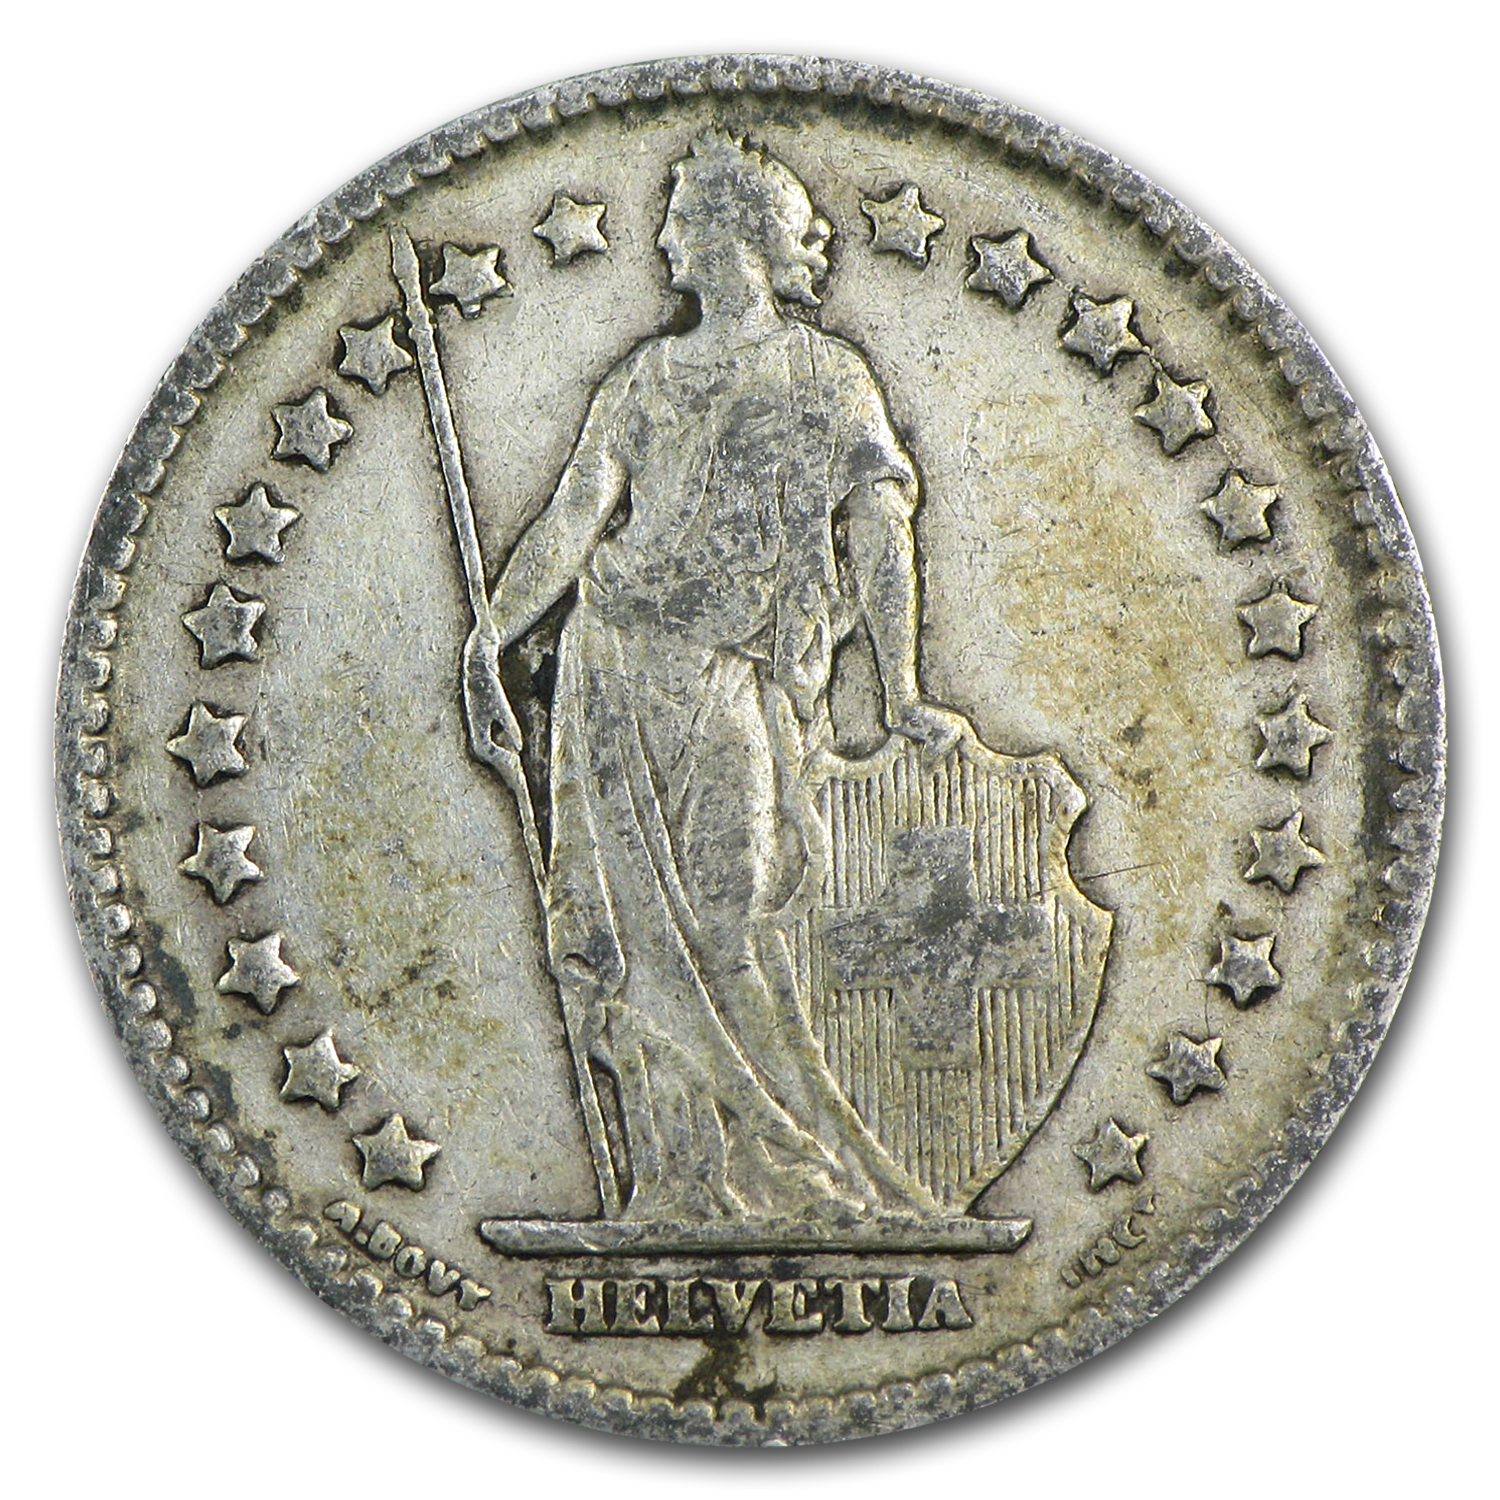 Switzerland 1901-1967 1 Franc Silver Avg Circ ASW .1342